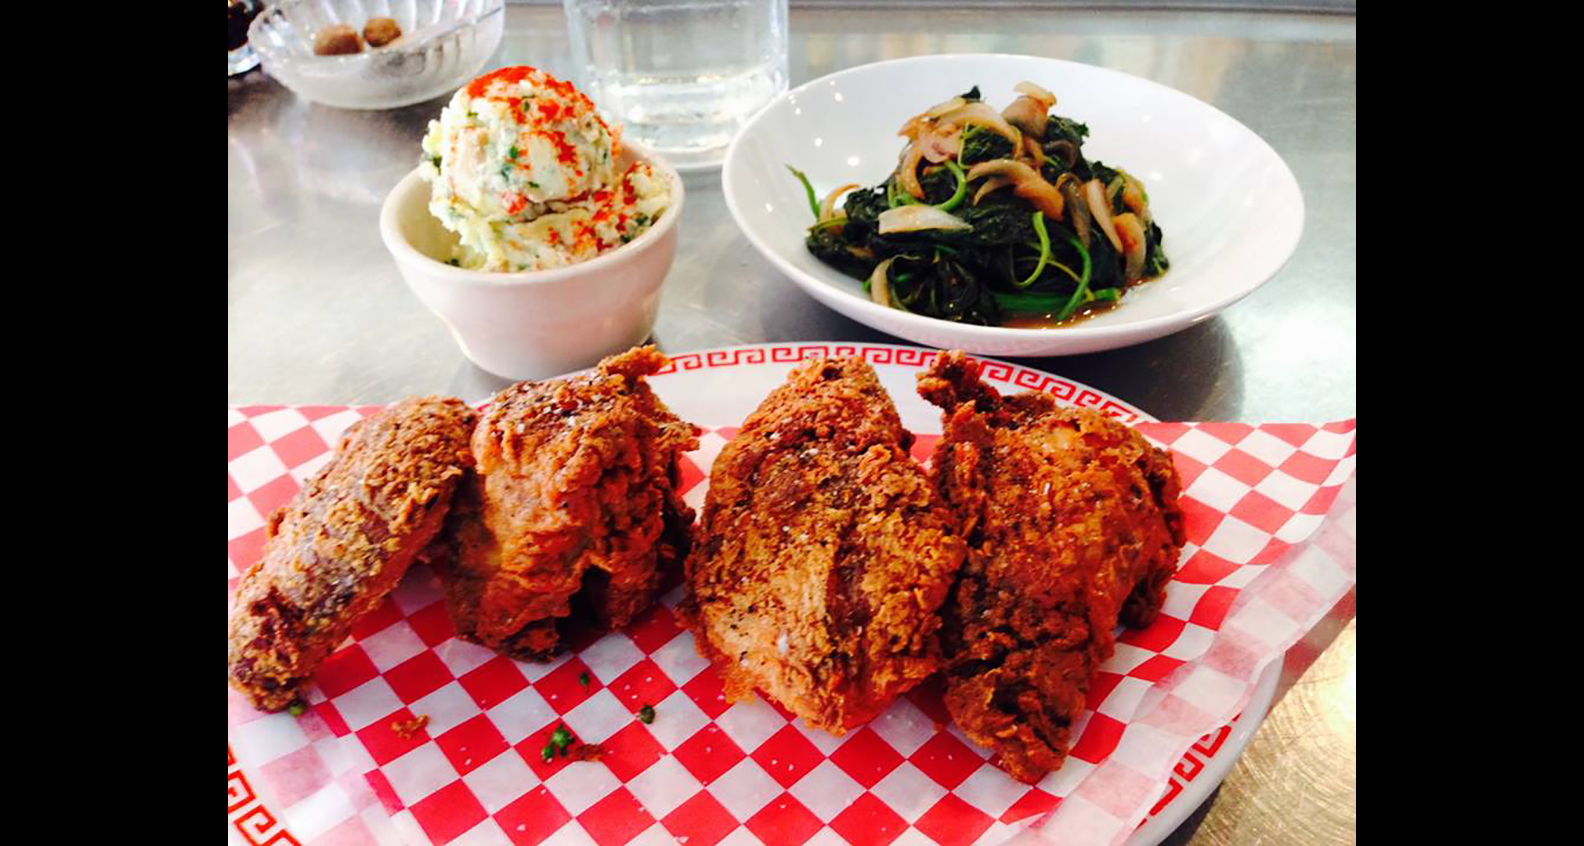 Fried chicken from Miss Ollie